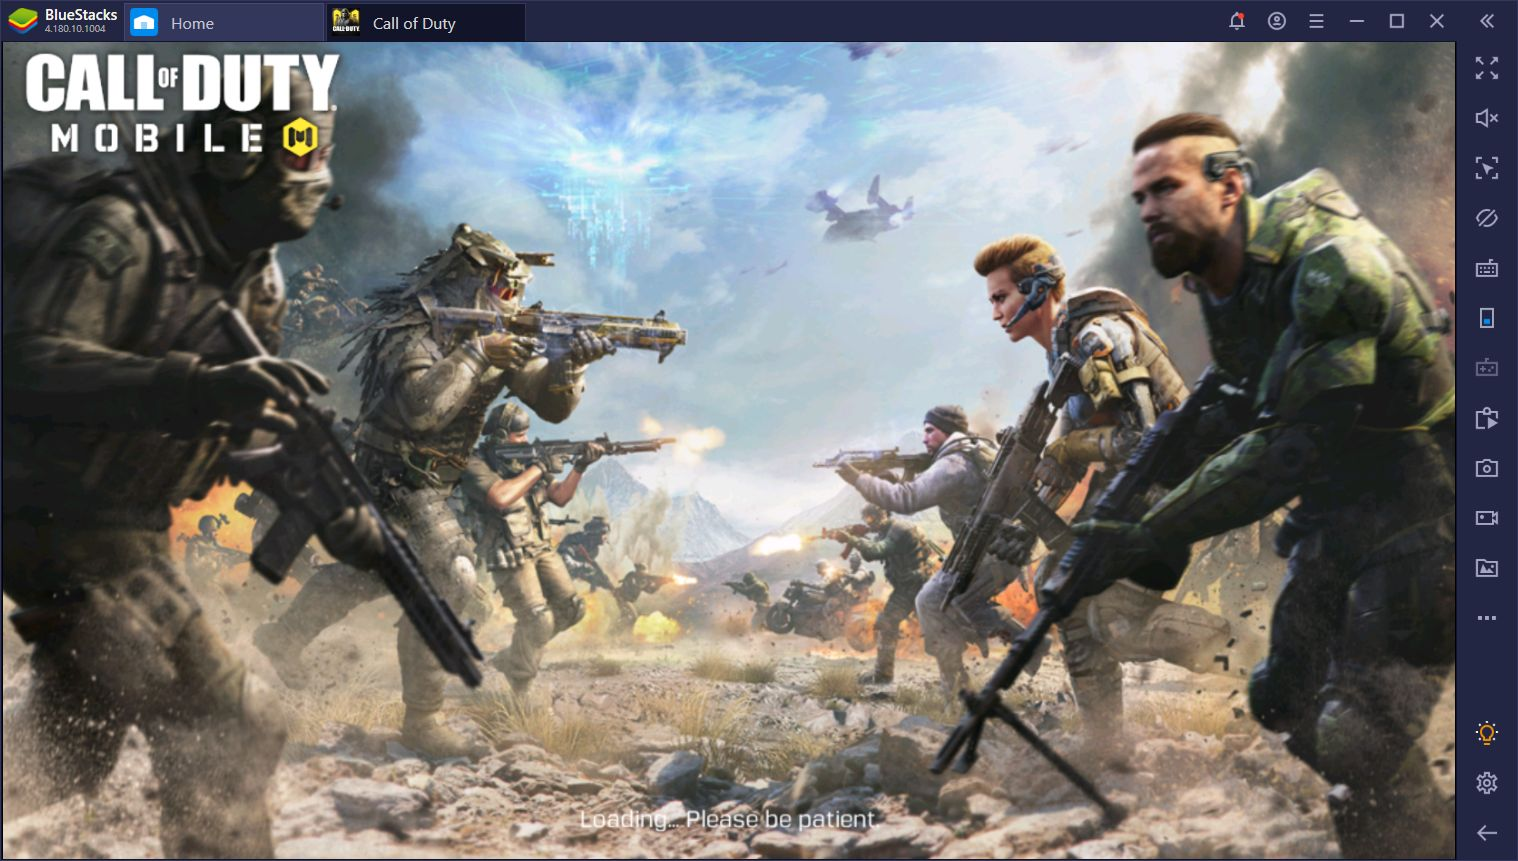 Cod Mobile Bluestacks